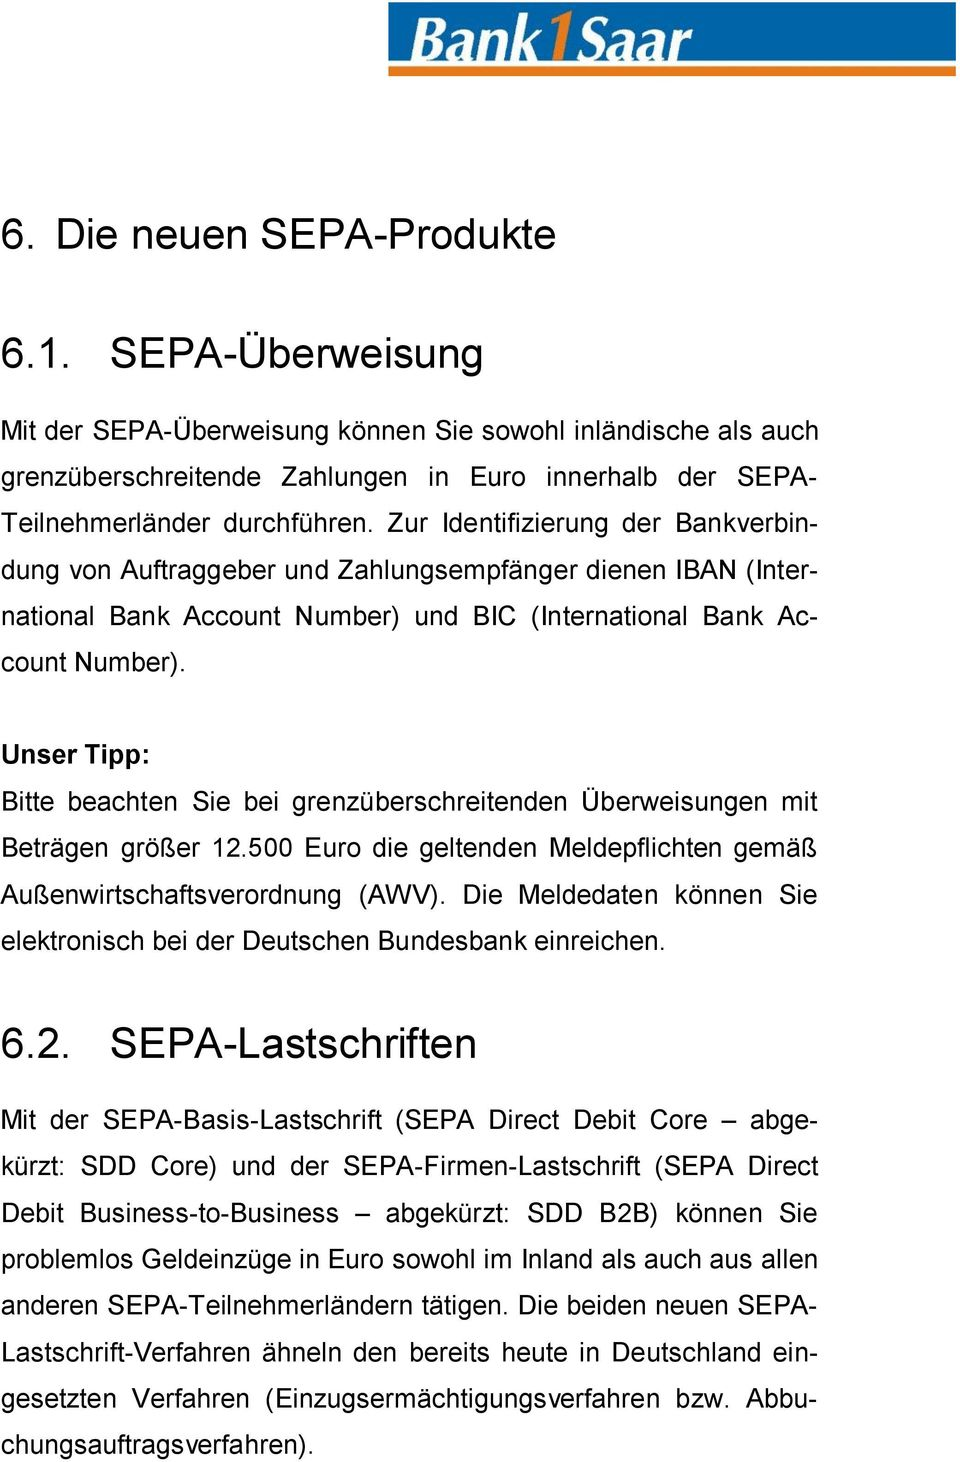 Zur Identifizierung der Bankverbindung von Auftraggeber und Zahlungsempfänger dienen IBAN (International Bank Account Number) und BIC (International Bank Account Number).